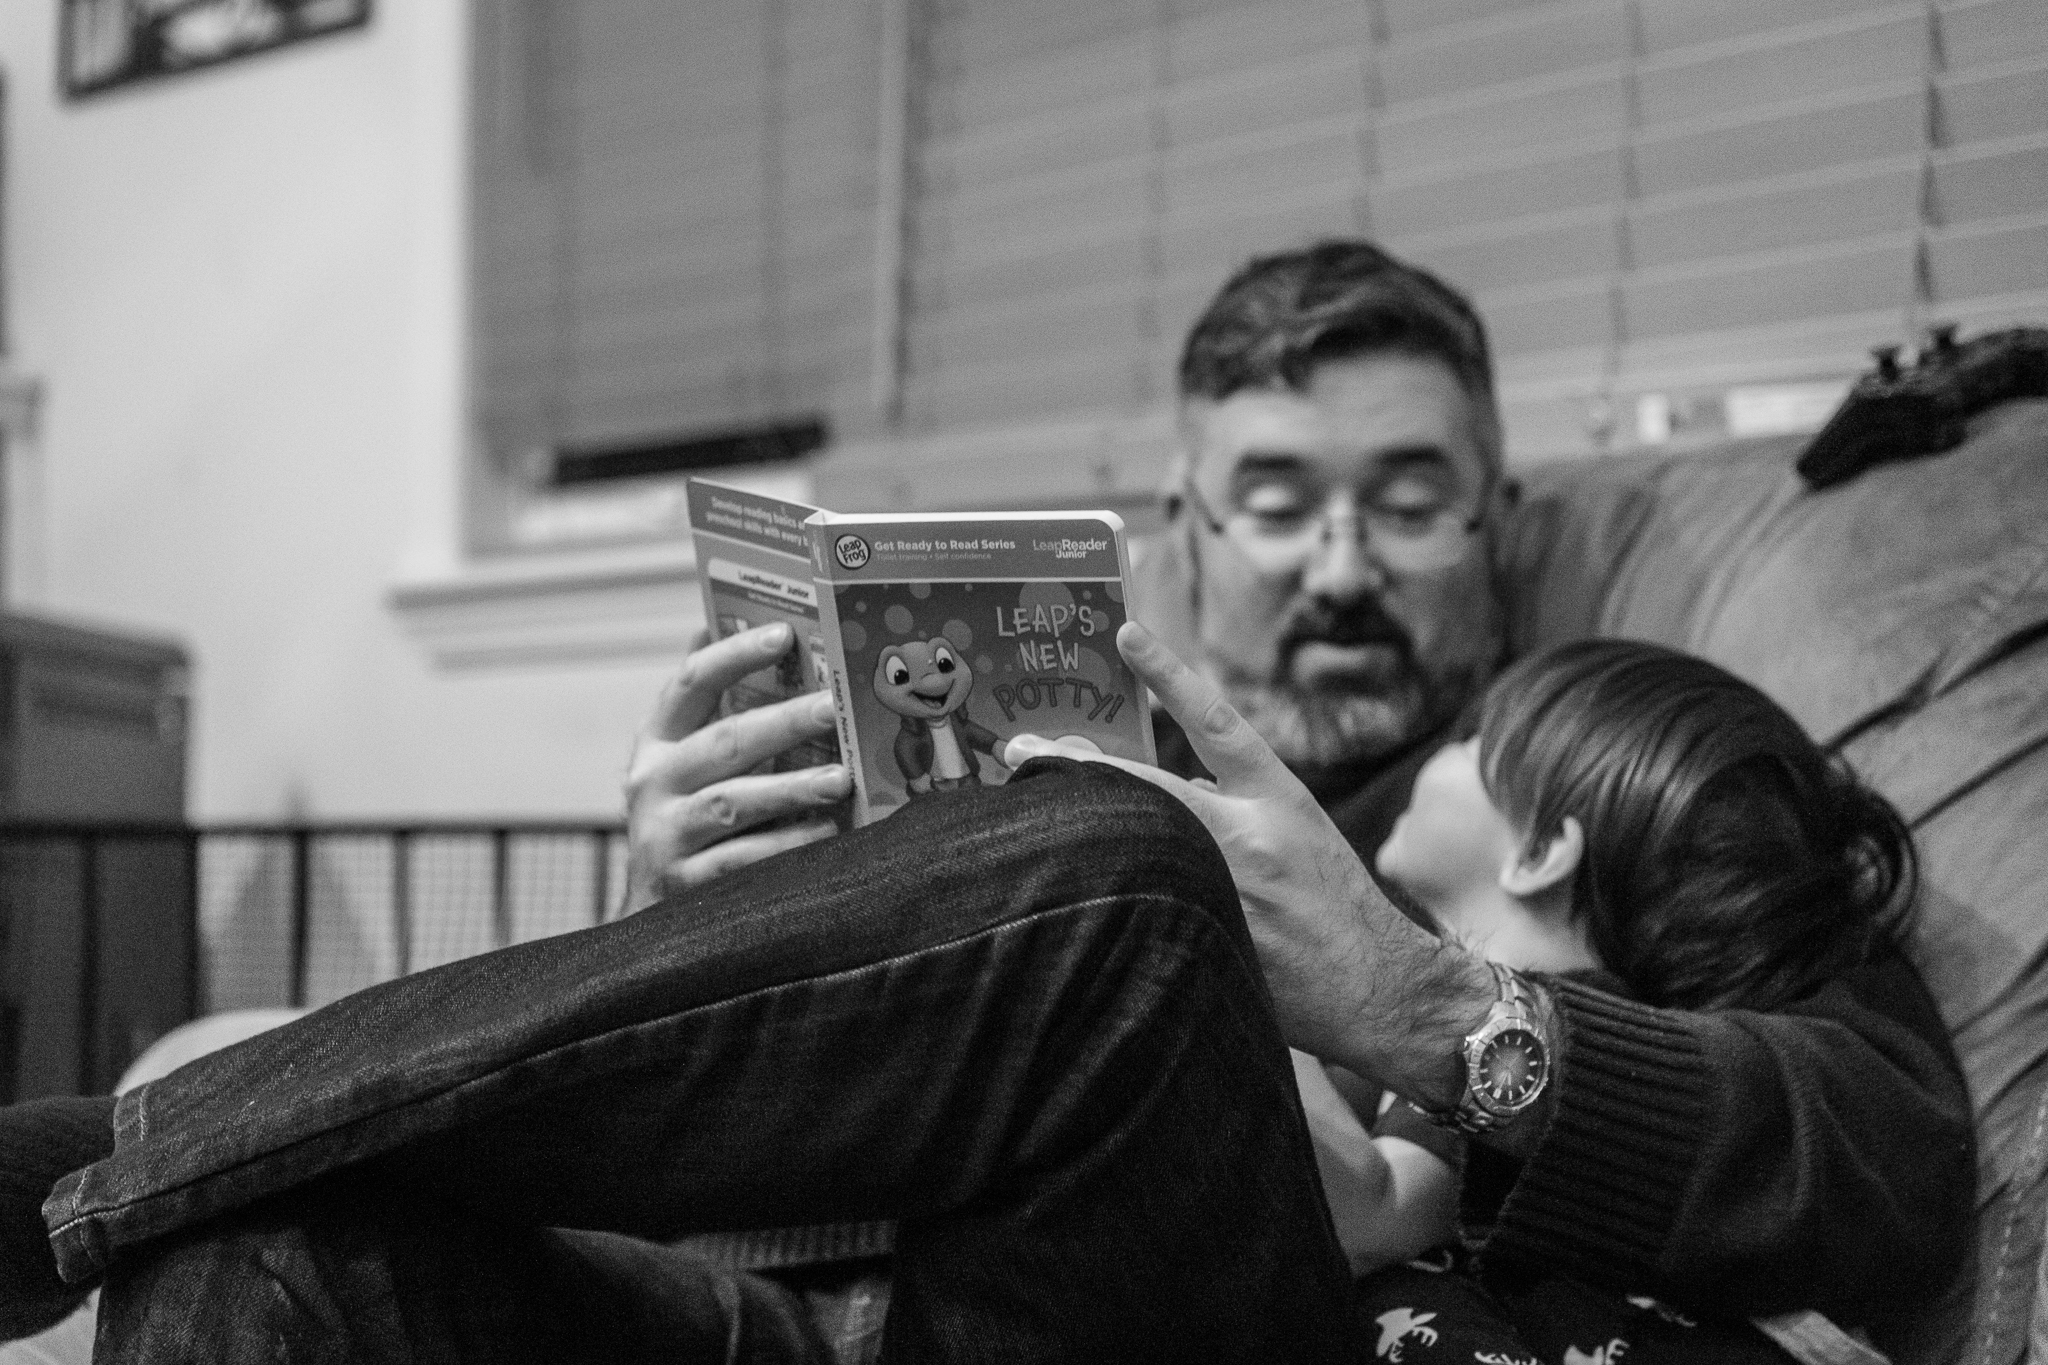 My husband reading to our son after his bath. He just finished potty training so they are reading the potty training book together. I cannot believe how fast he is growing. I am so glad I have these images to remember it all.